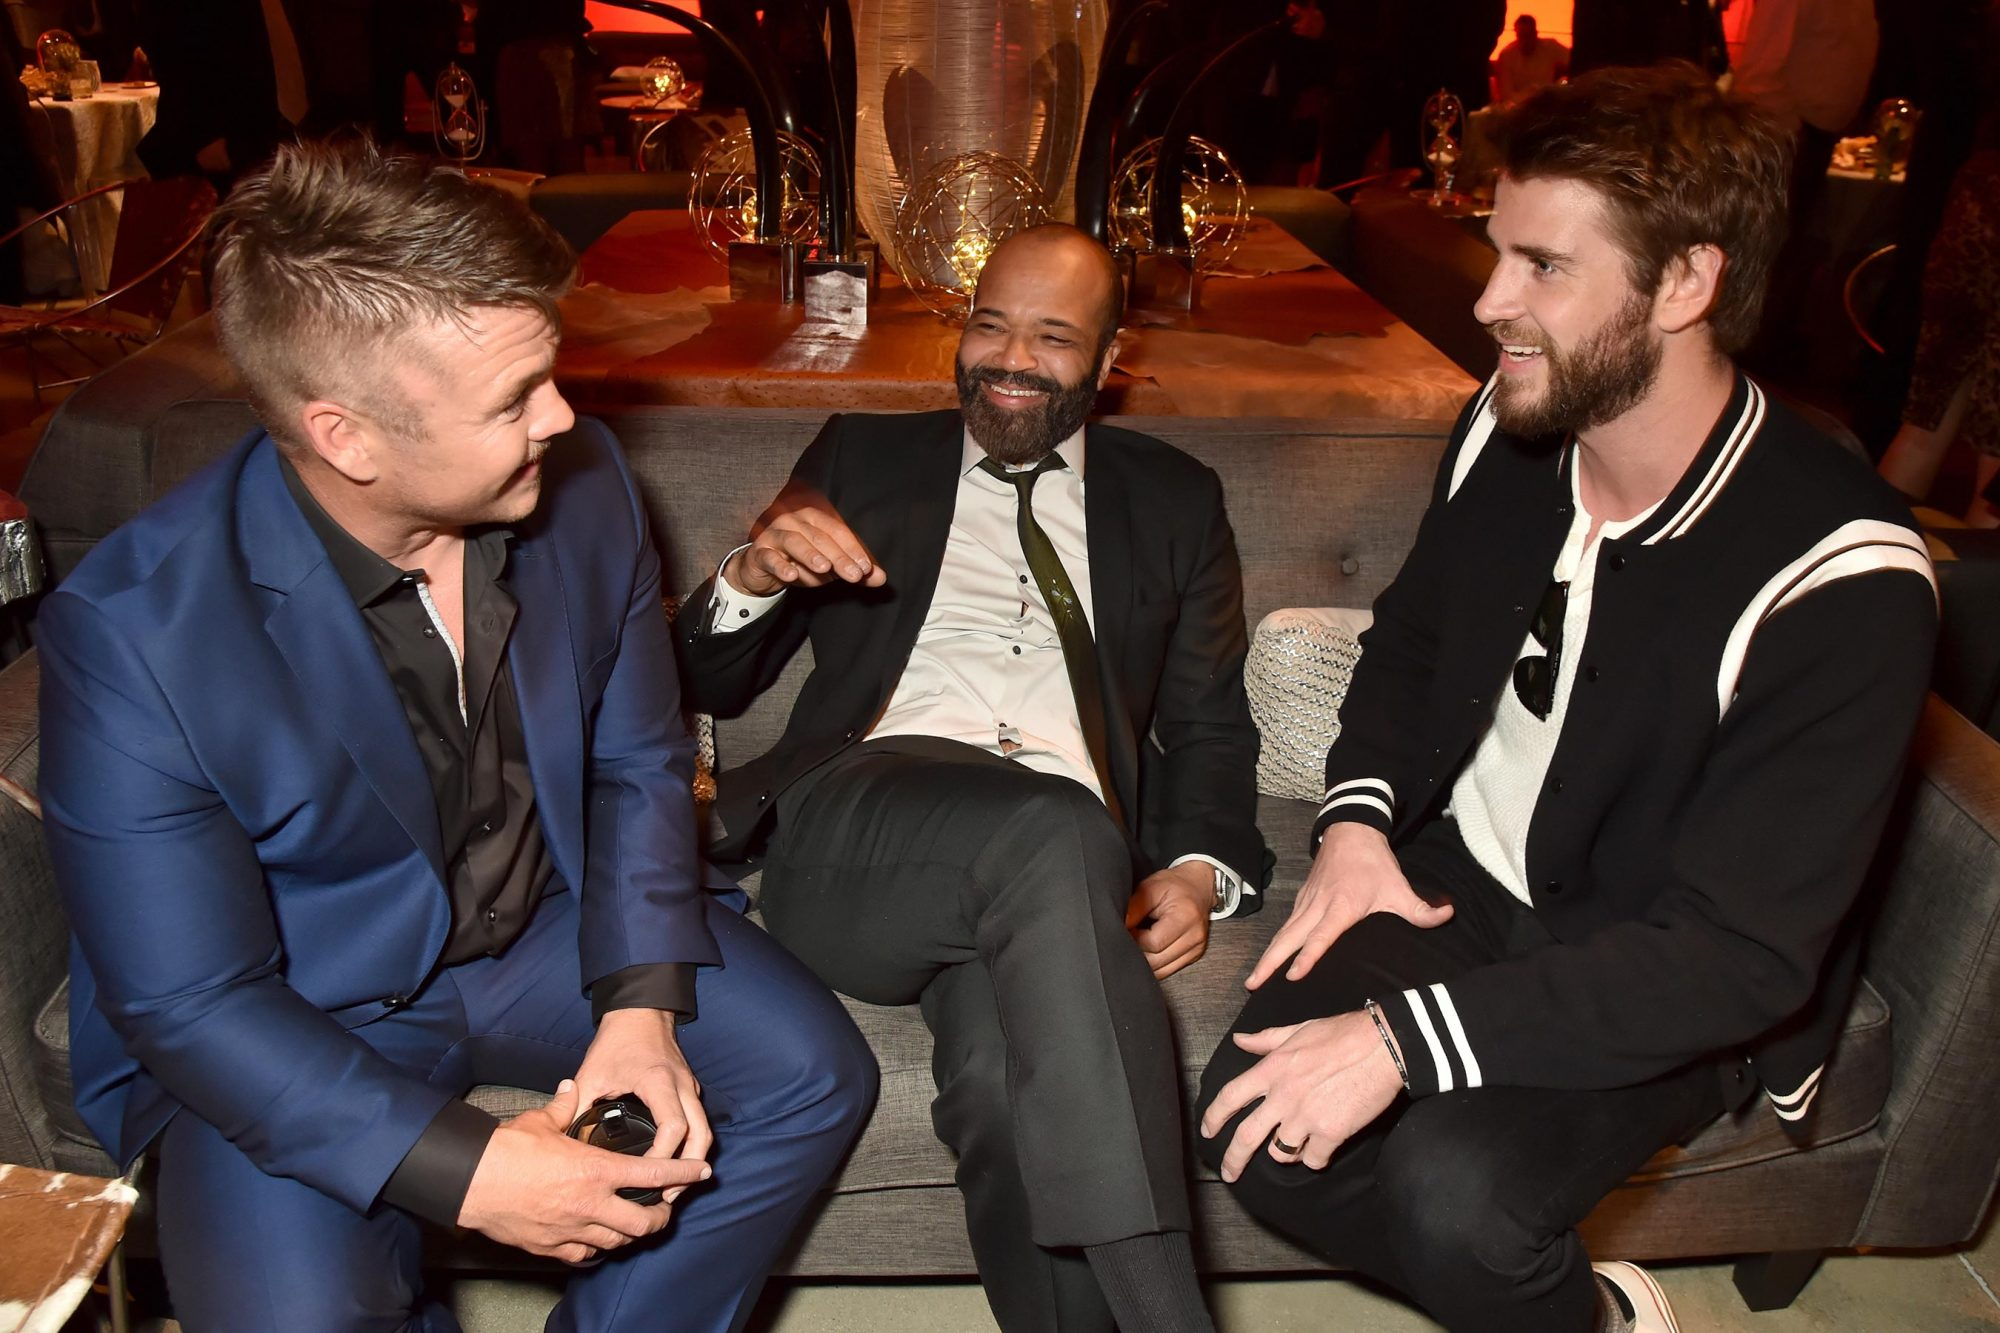 Luke Hemsworth, Jeffrey Wright, and Liam Hemsworth